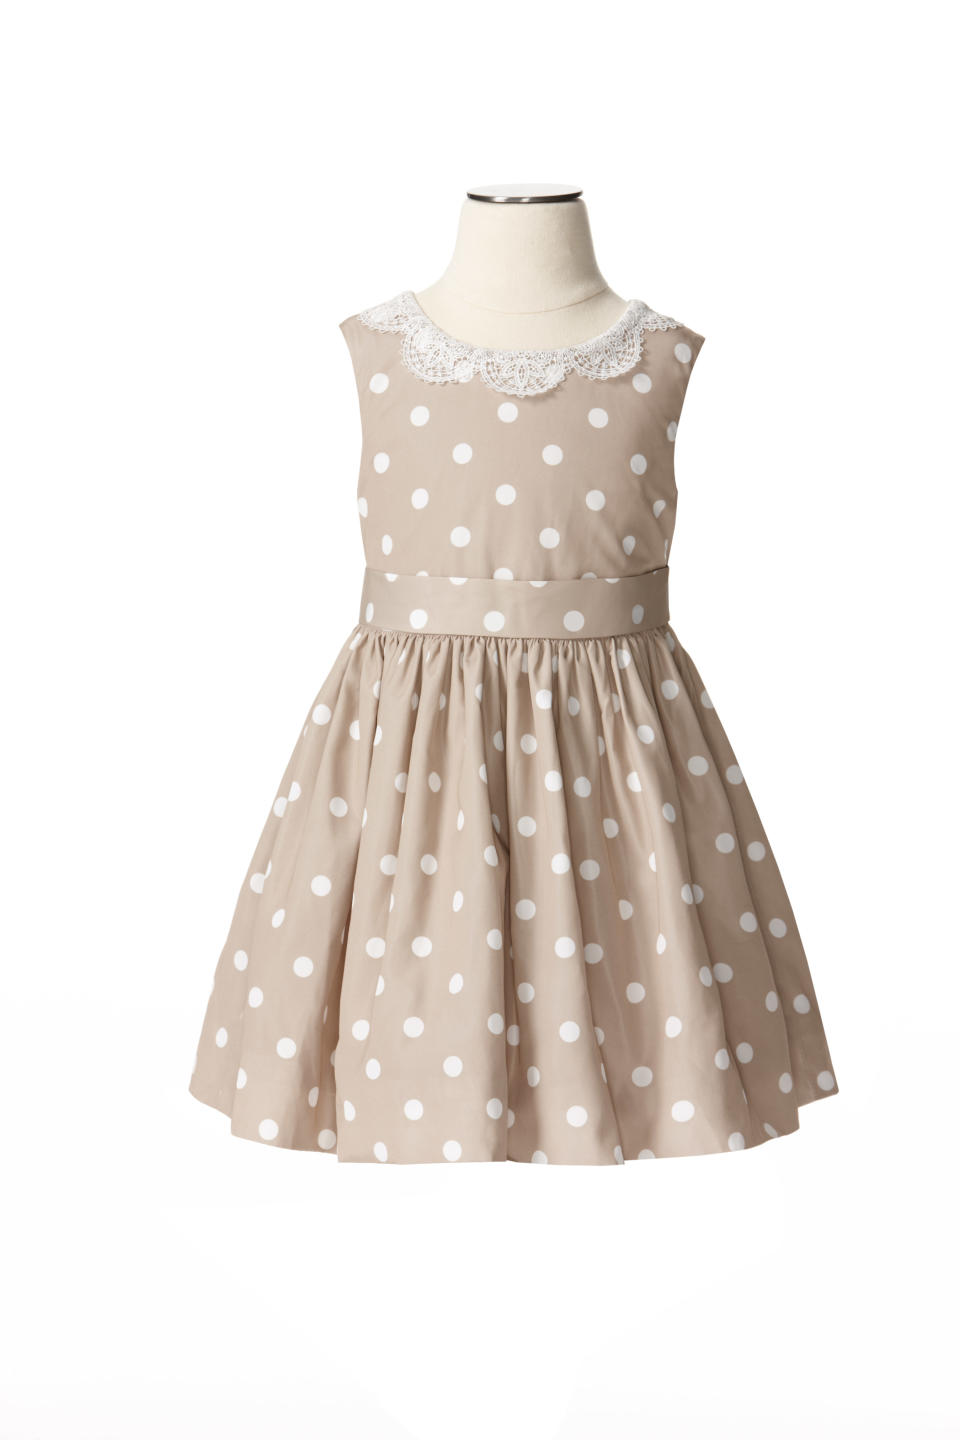 <b>Jason Wu for Target + Neiman Marcus Girl's Printed Dress (Polka Dot) </b><br><br> Price: $59.99<br><br> Sizes: 12M-5T<br><br> For the first time ever, Jason Wu has designed for girls, creating two little girl's dresses for the collaboration. <br><br>